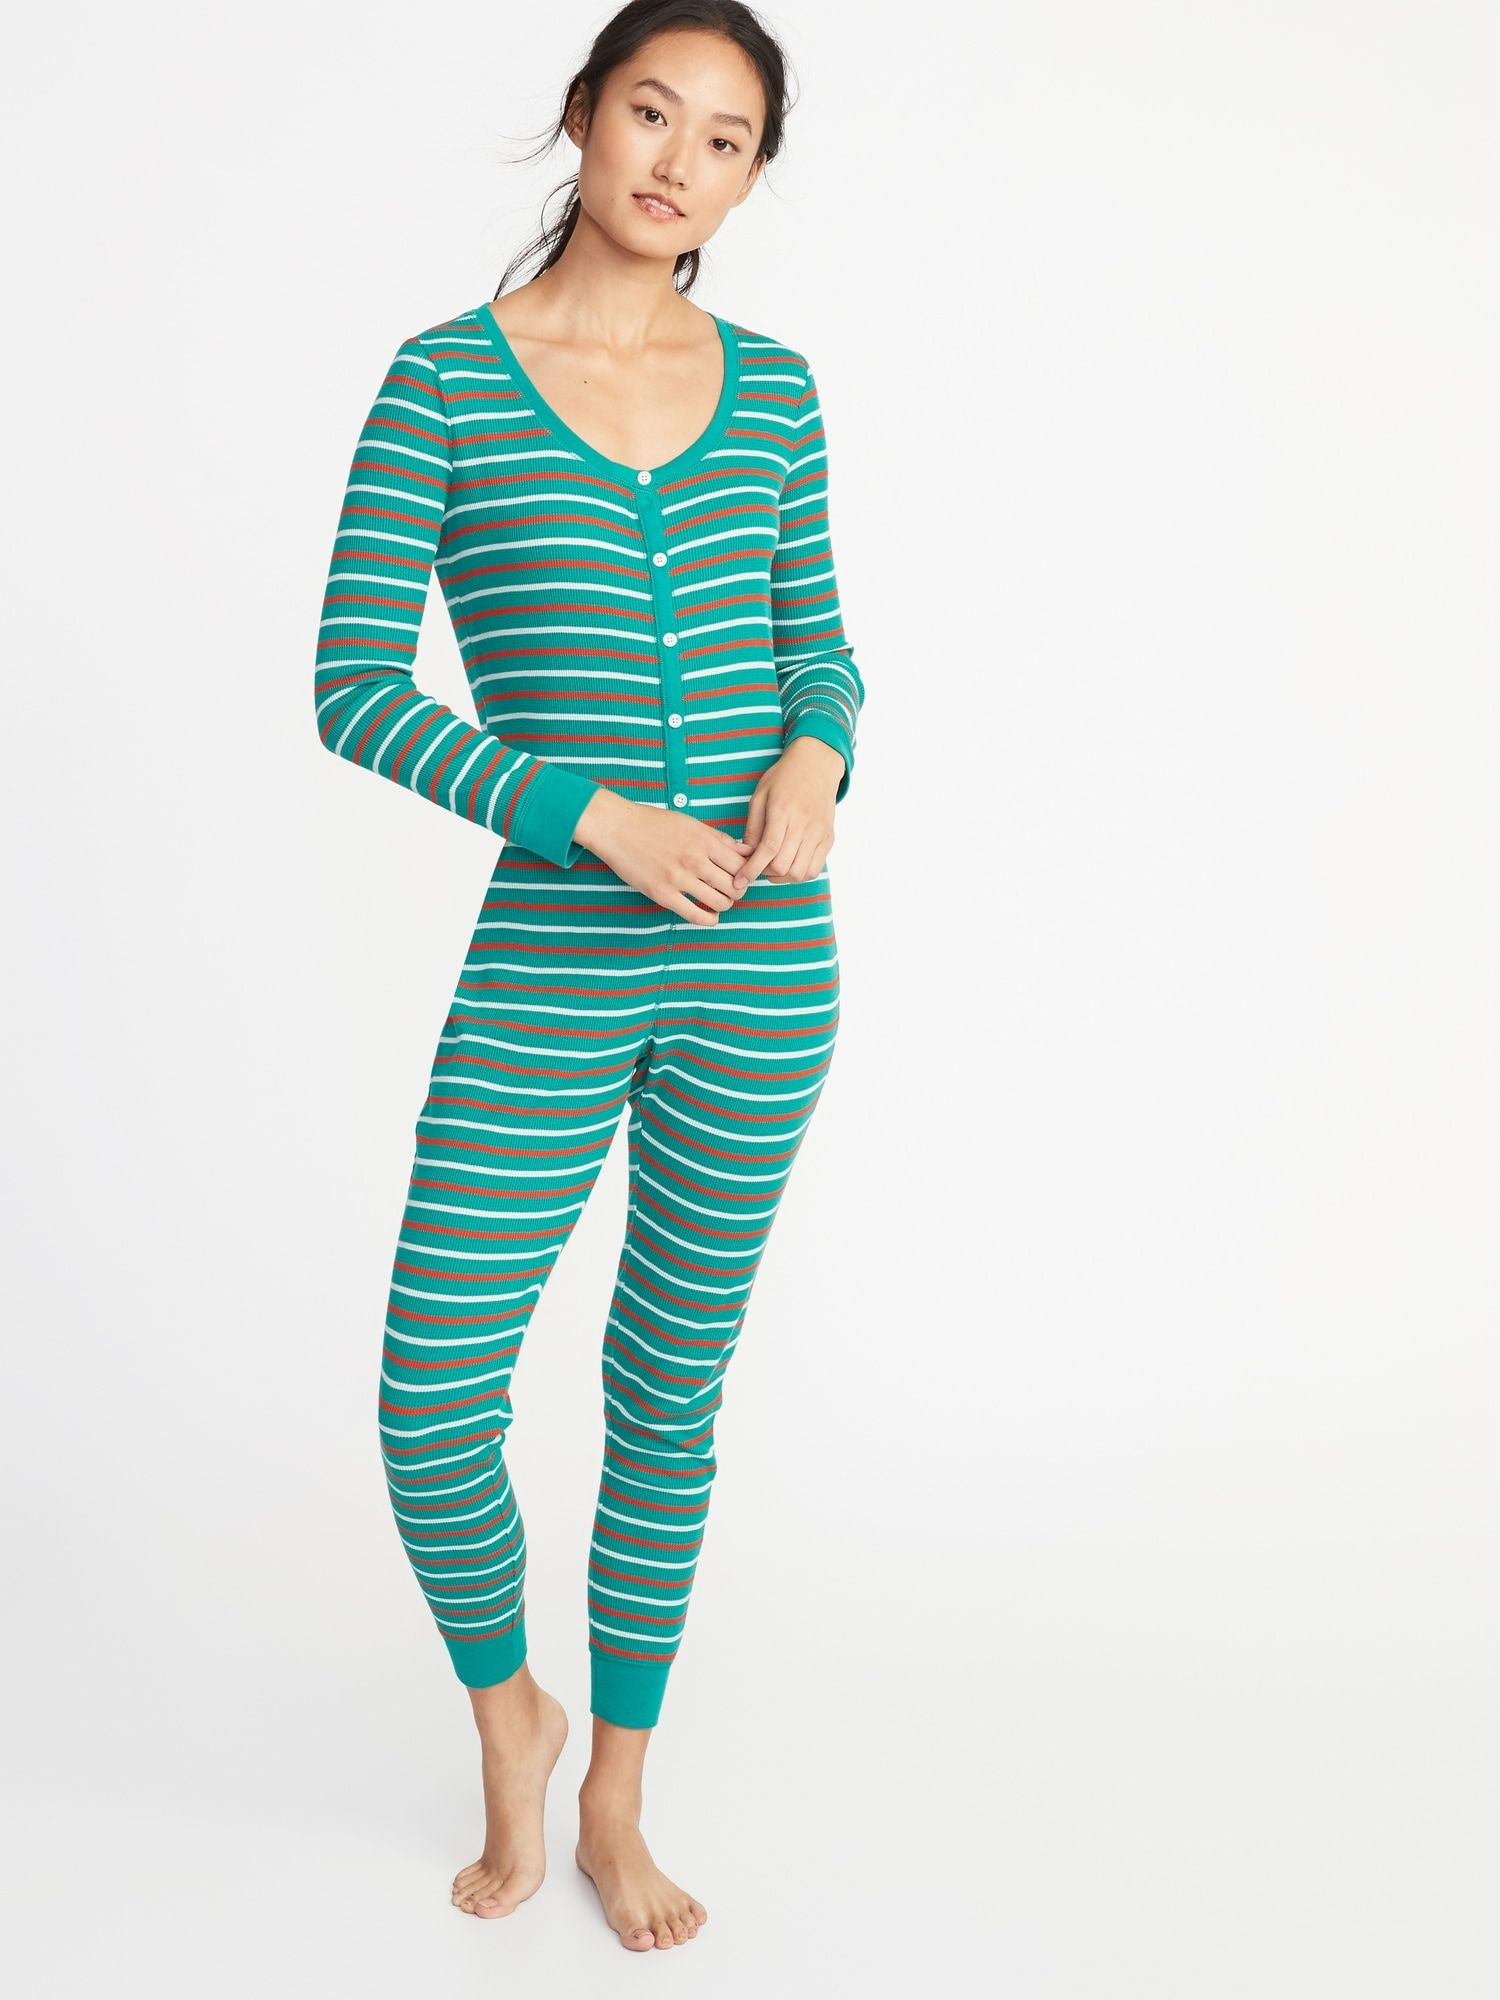 Patterned ThermalKnit OnePiece PJs for Women Old Navy